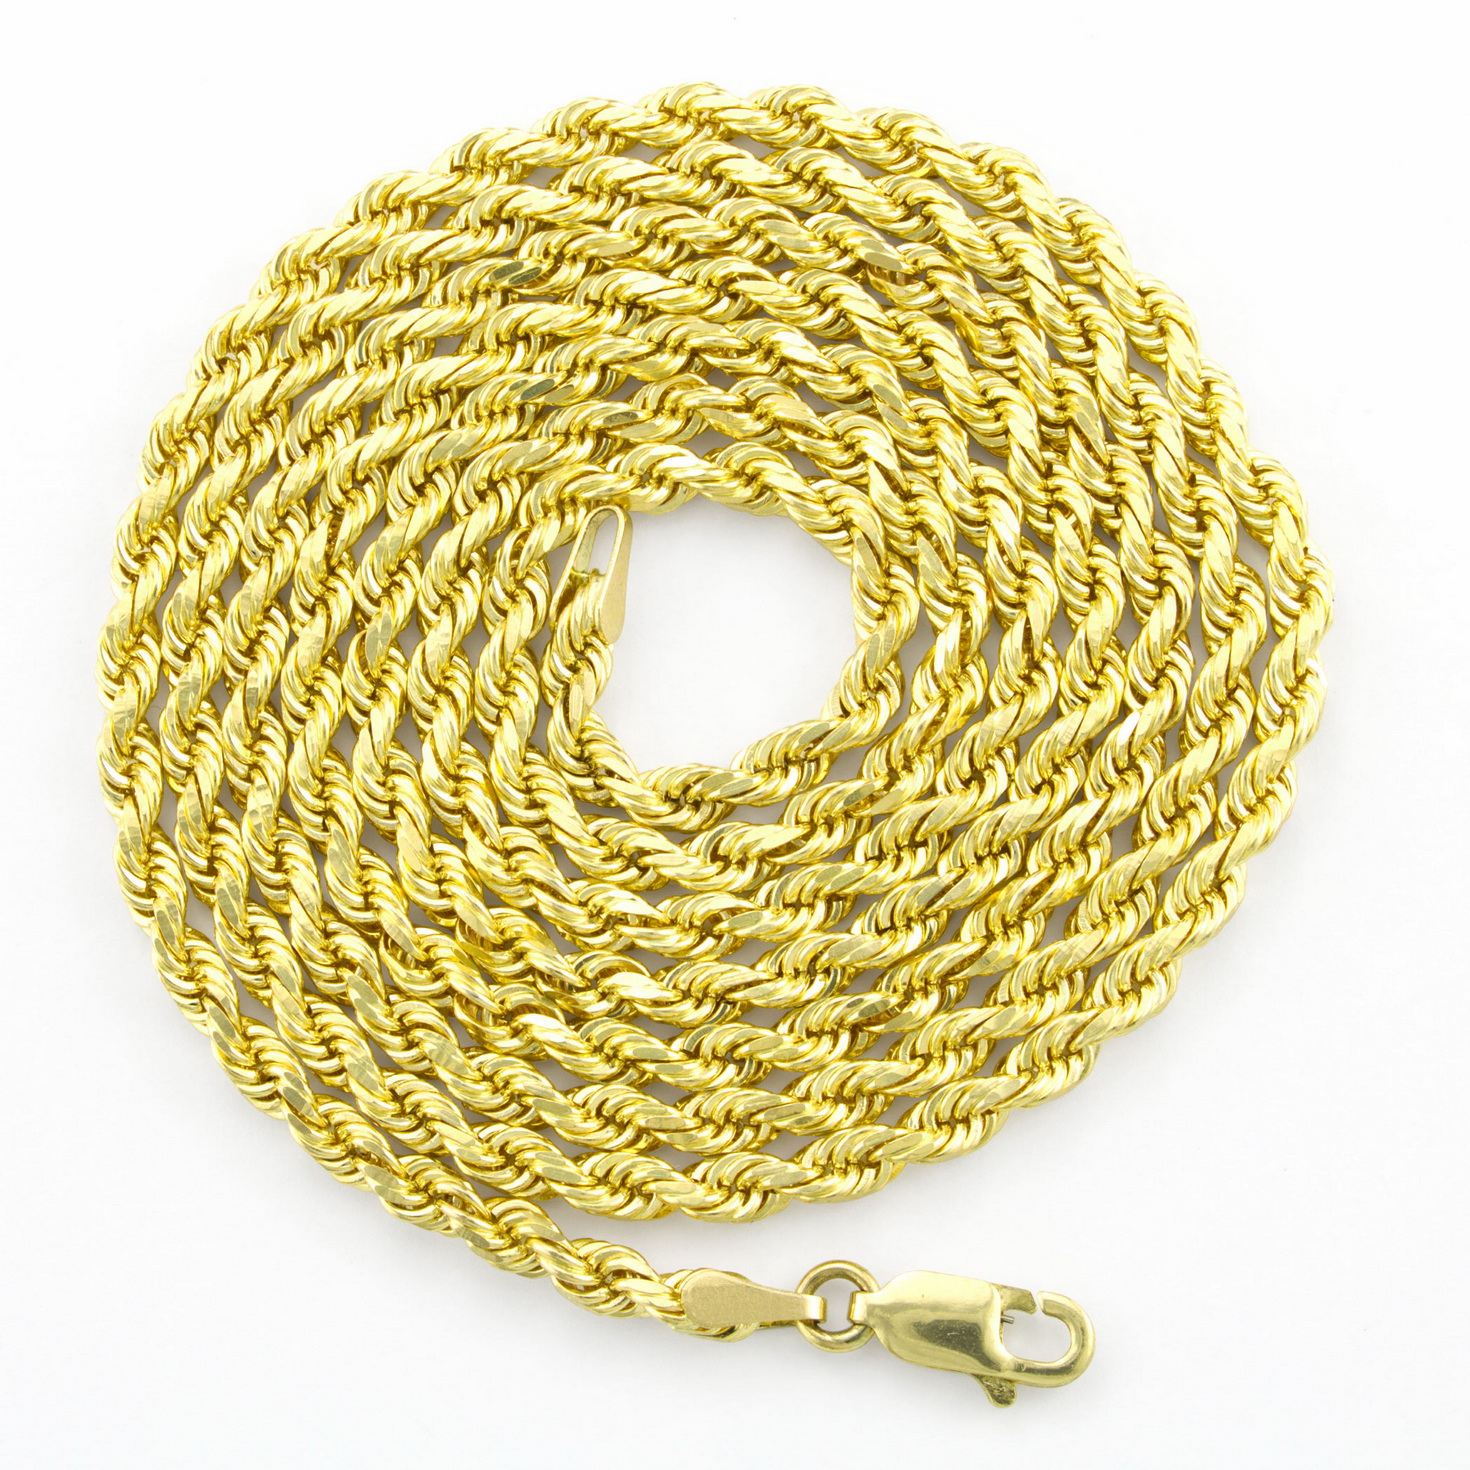 Real-14K-Yellow-Gold-3mm-Diamond-Cut-Rope-Chain-Necklace-Lobster-Clasp-18-034-30-034 thumbnail 66